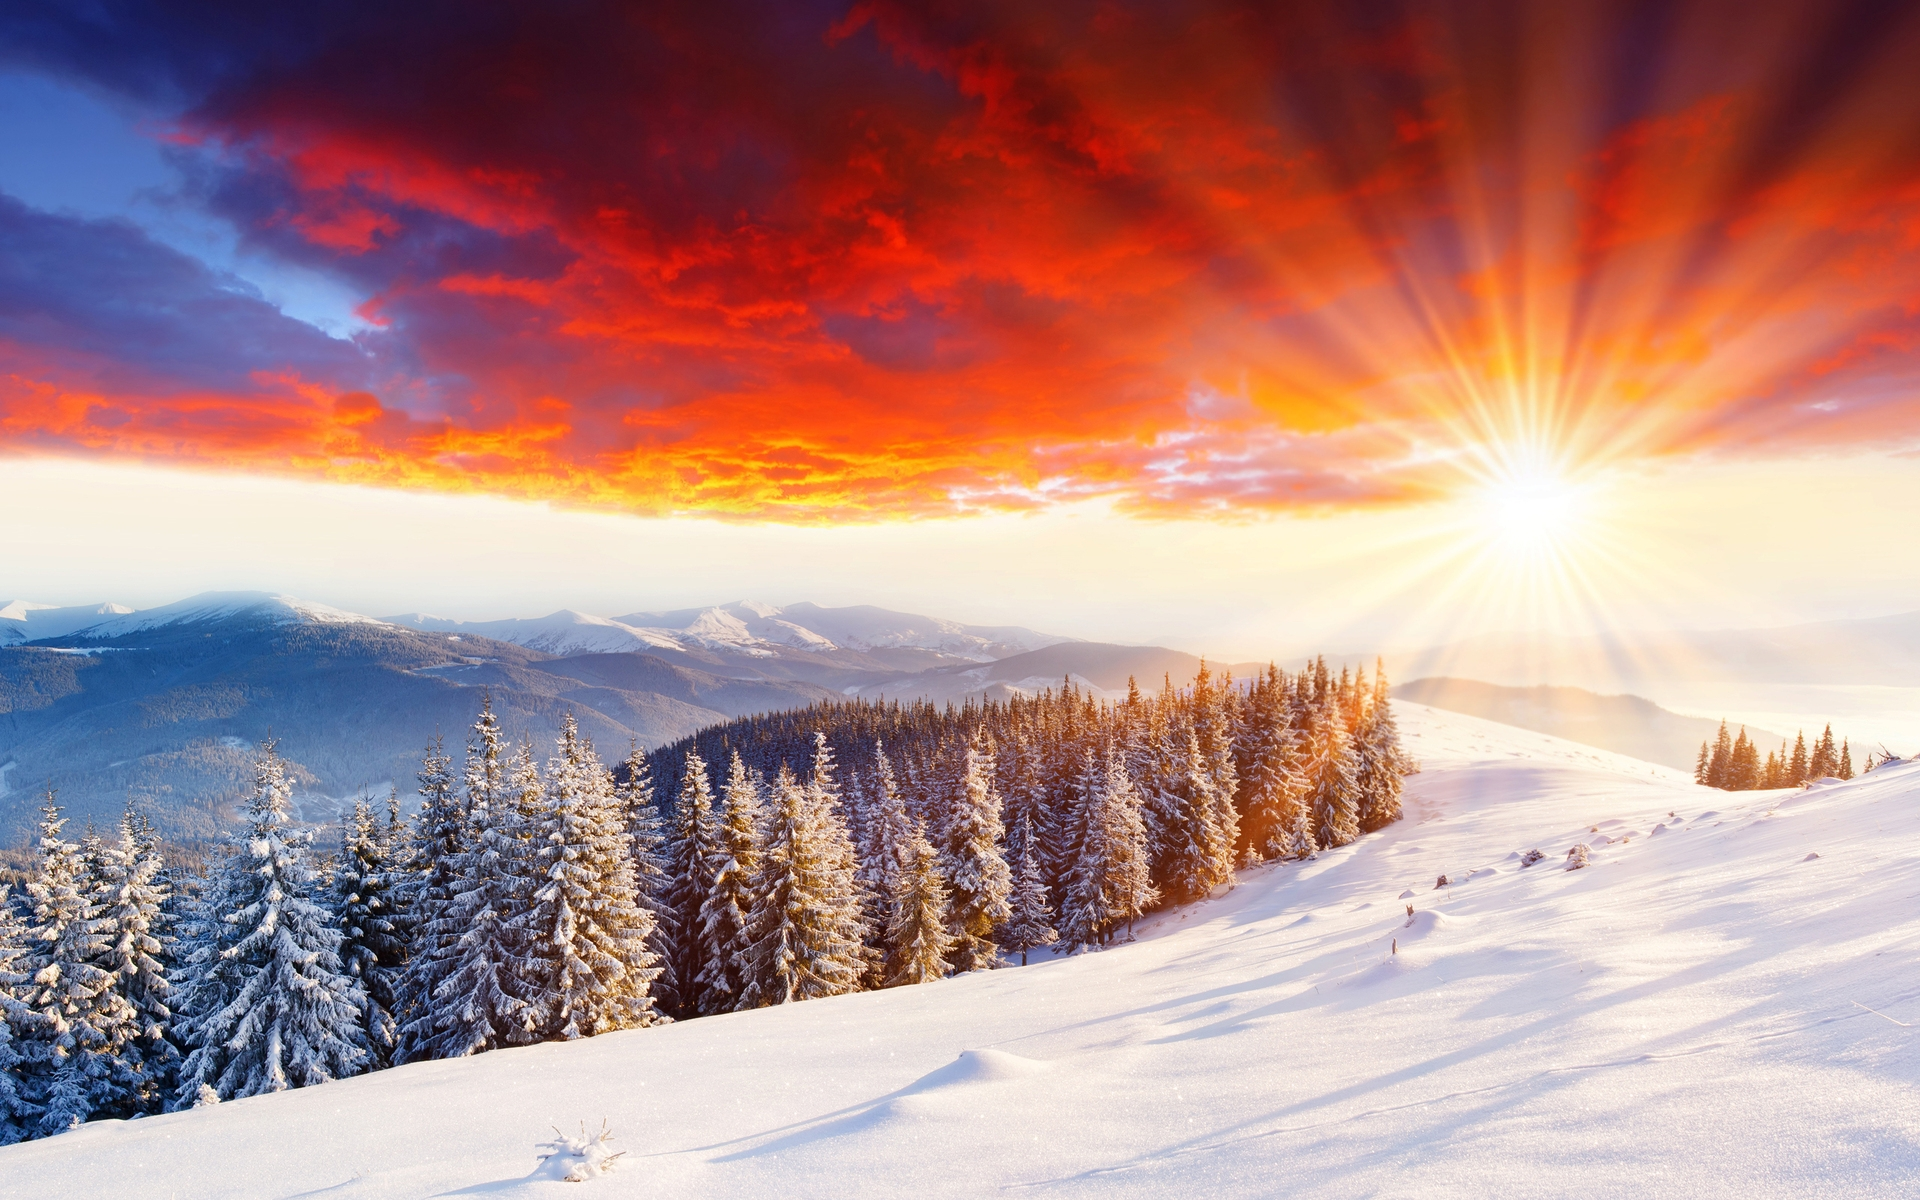 32121 download wallpaper Landscape, Sunset, Mountains screensavers and pictures for free